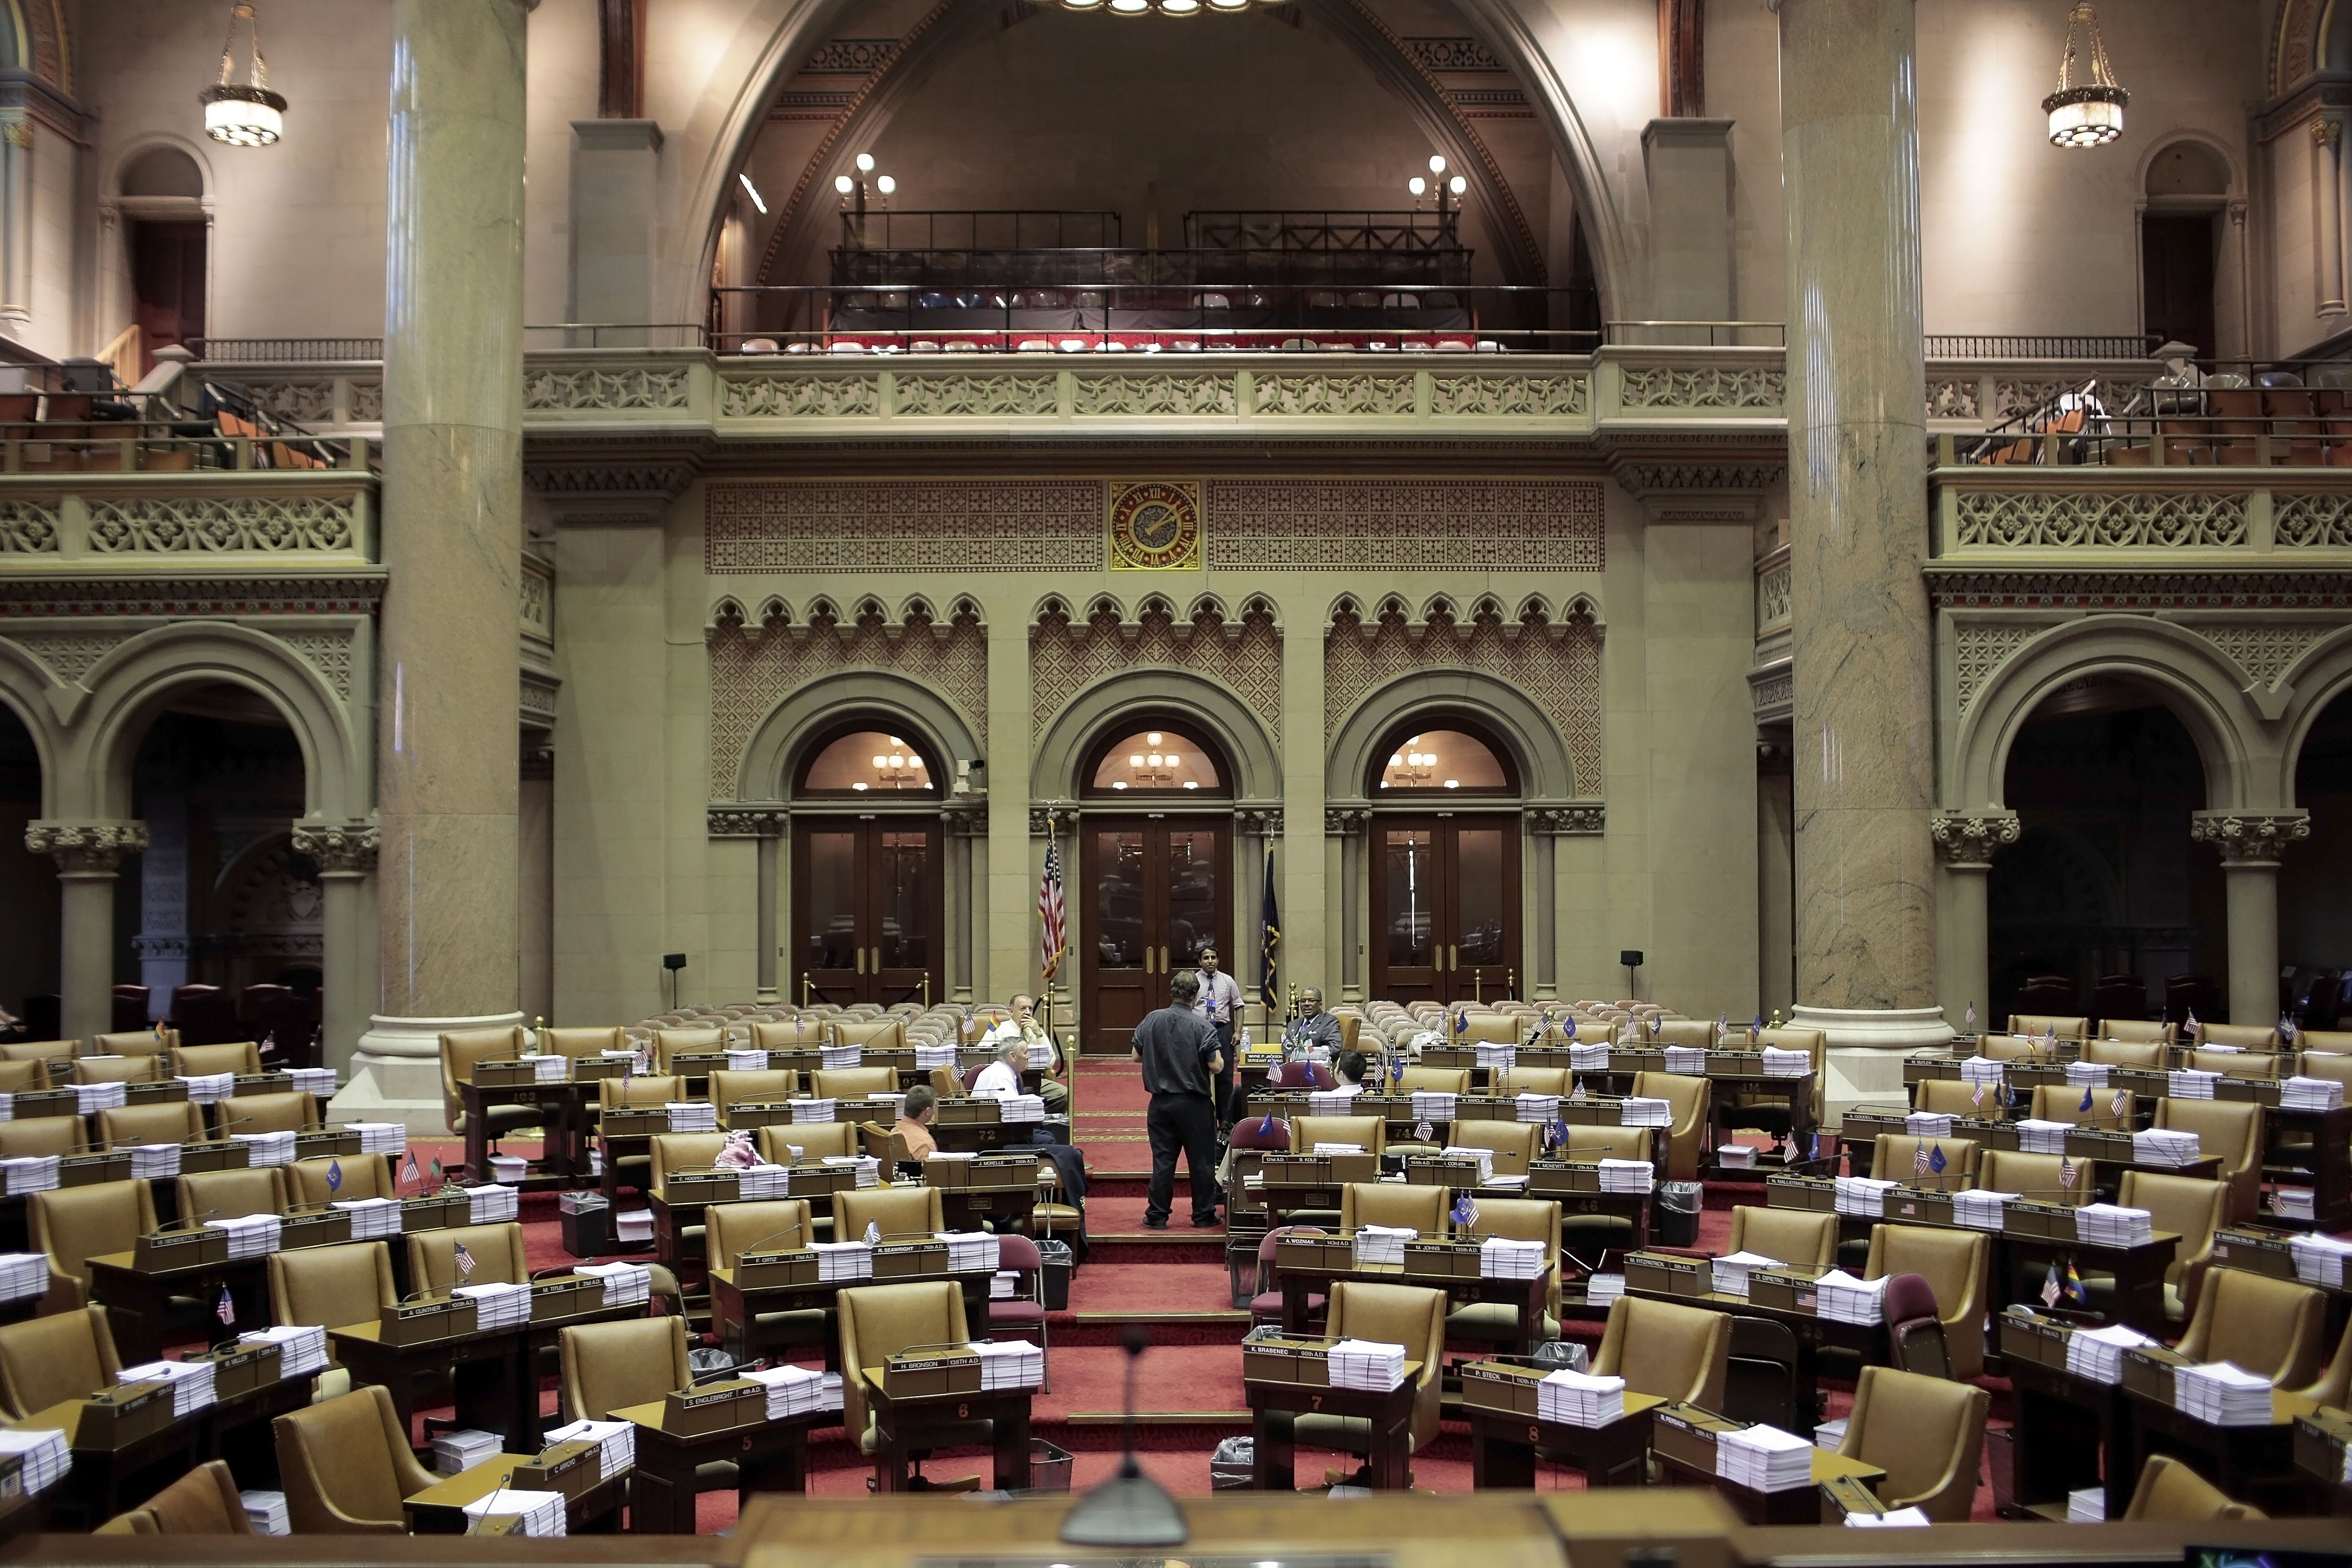 The Assembly chamber in the State Capitol Building in Albany. (New York Times)